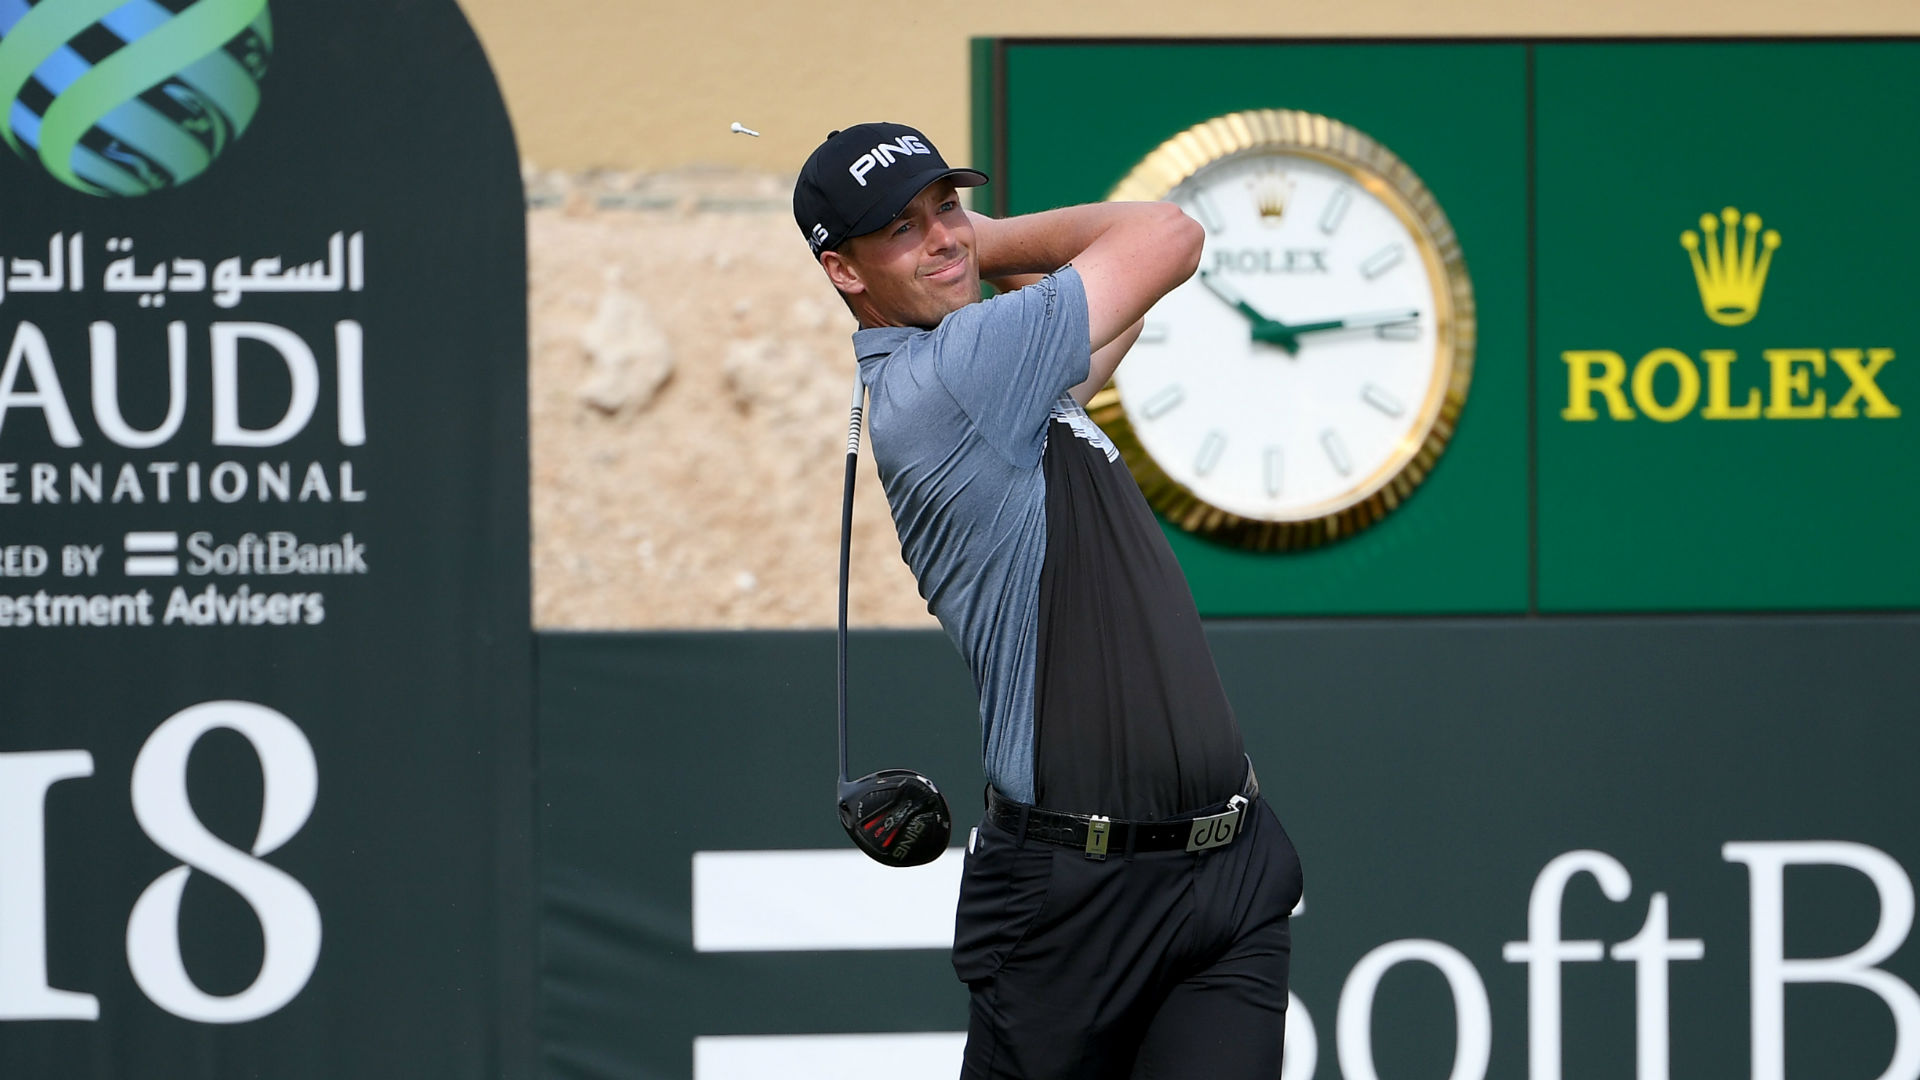 Perez moves clear in Saudi Arabia as Johnson, Mickelson and Koepka need big weekend